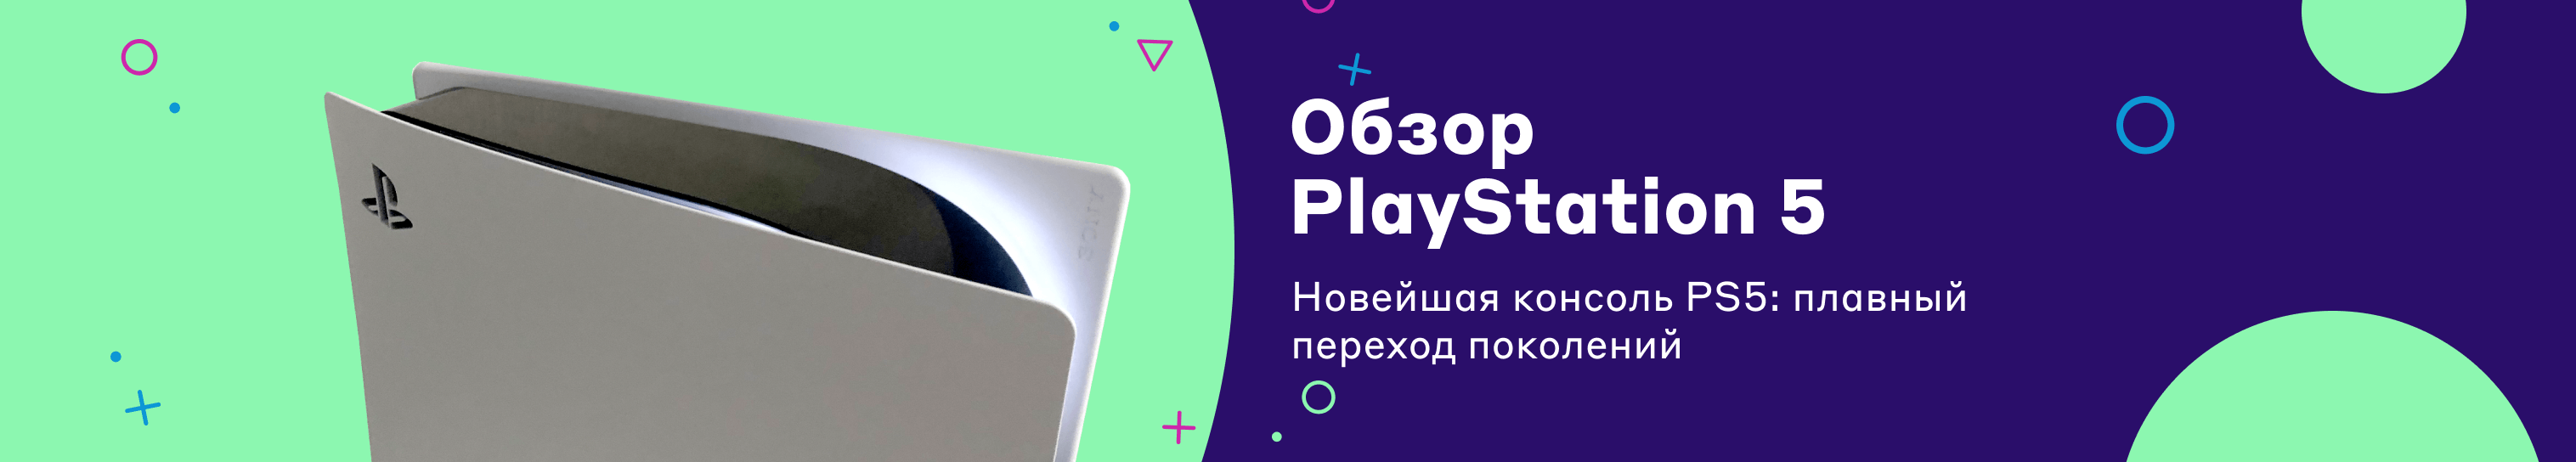 Обзор PlayStation 5